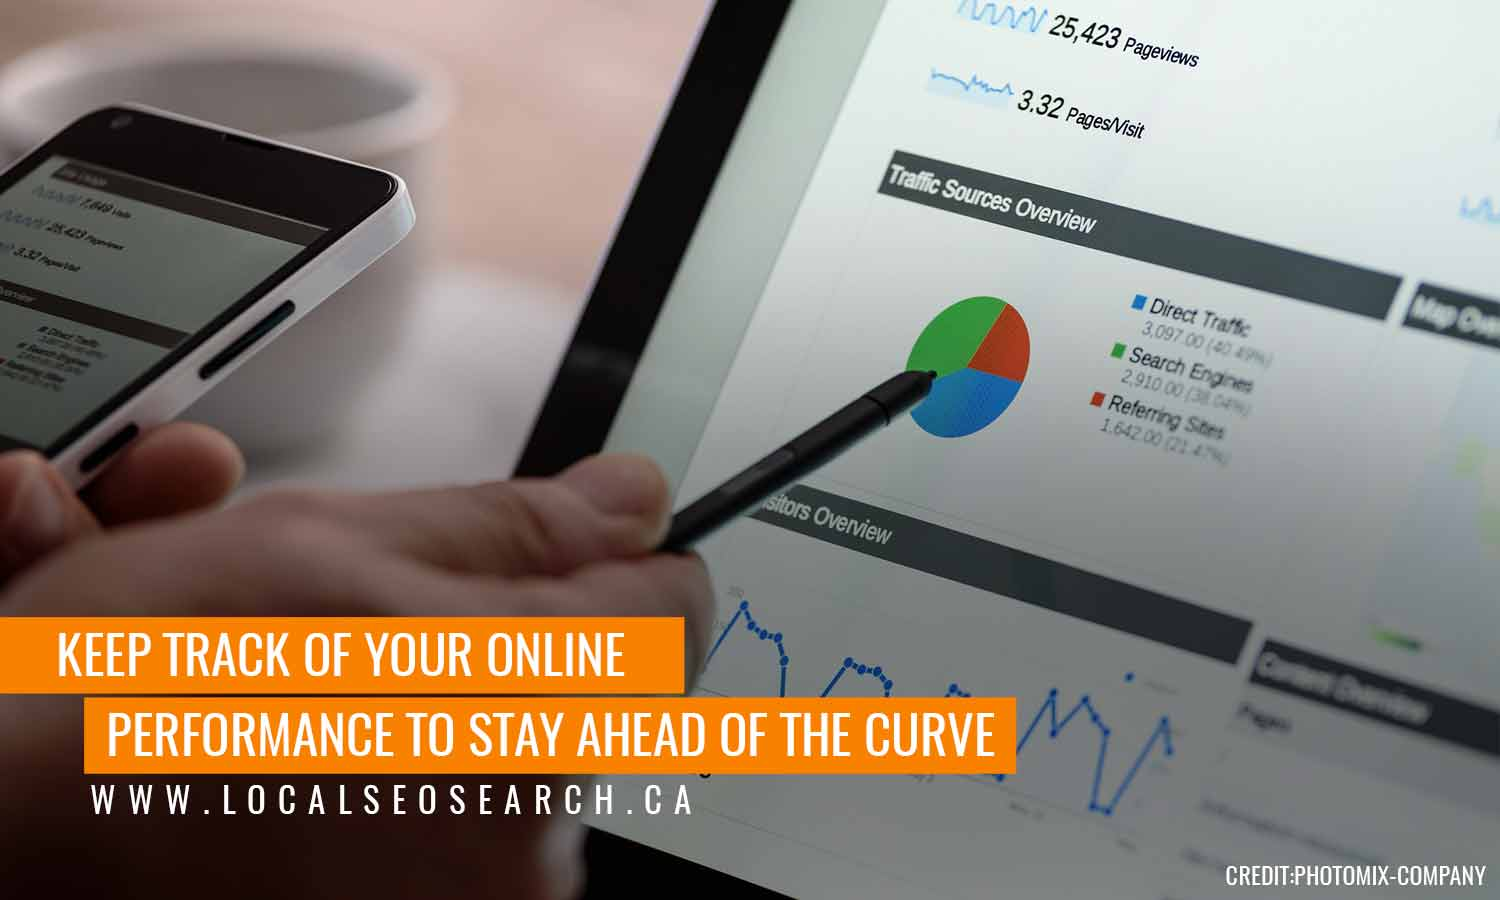 Keep-track-of-your-online-performance-to-stay-ahead-of-the-curve